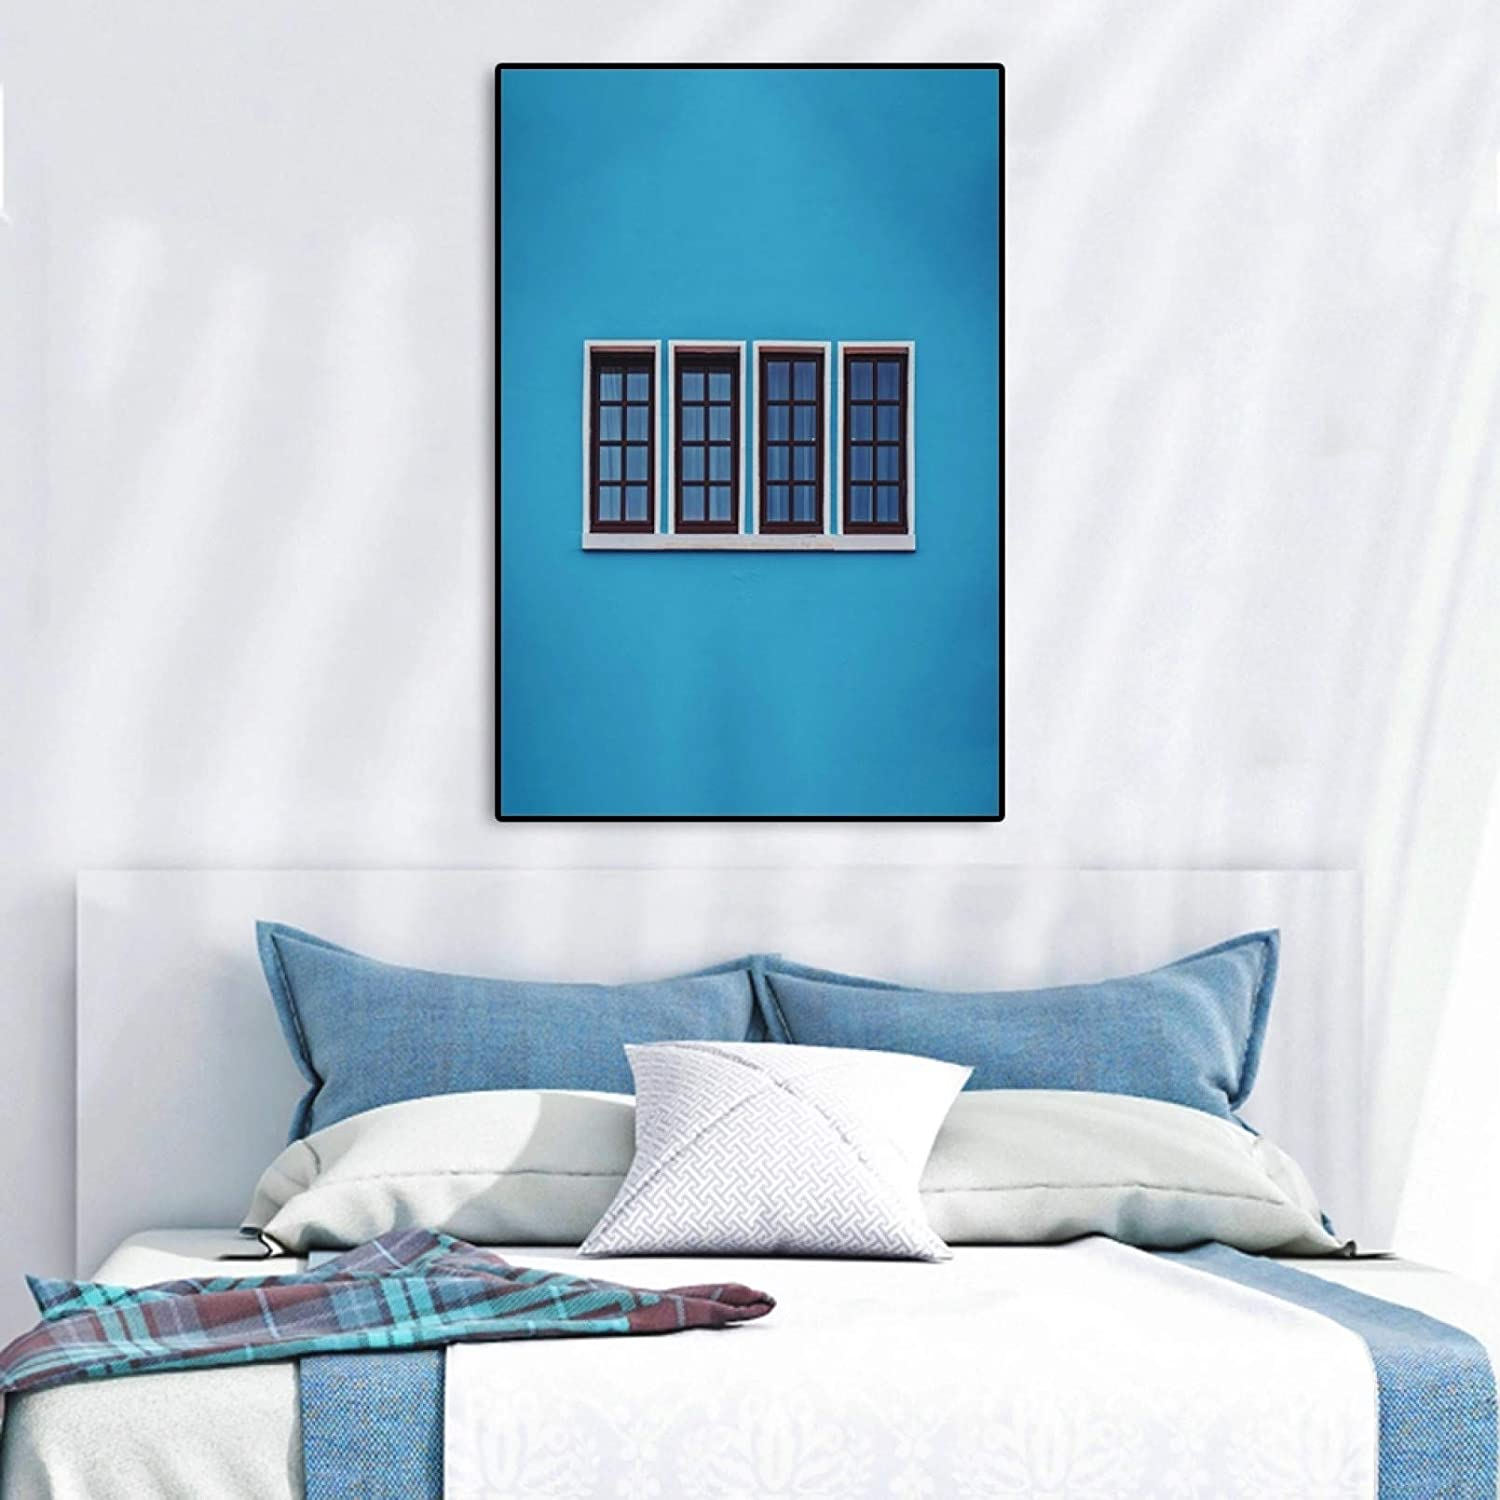 Canvas Prints Modern Style Max 57% OFF House Al sold out. Building All of C Kinds Windows